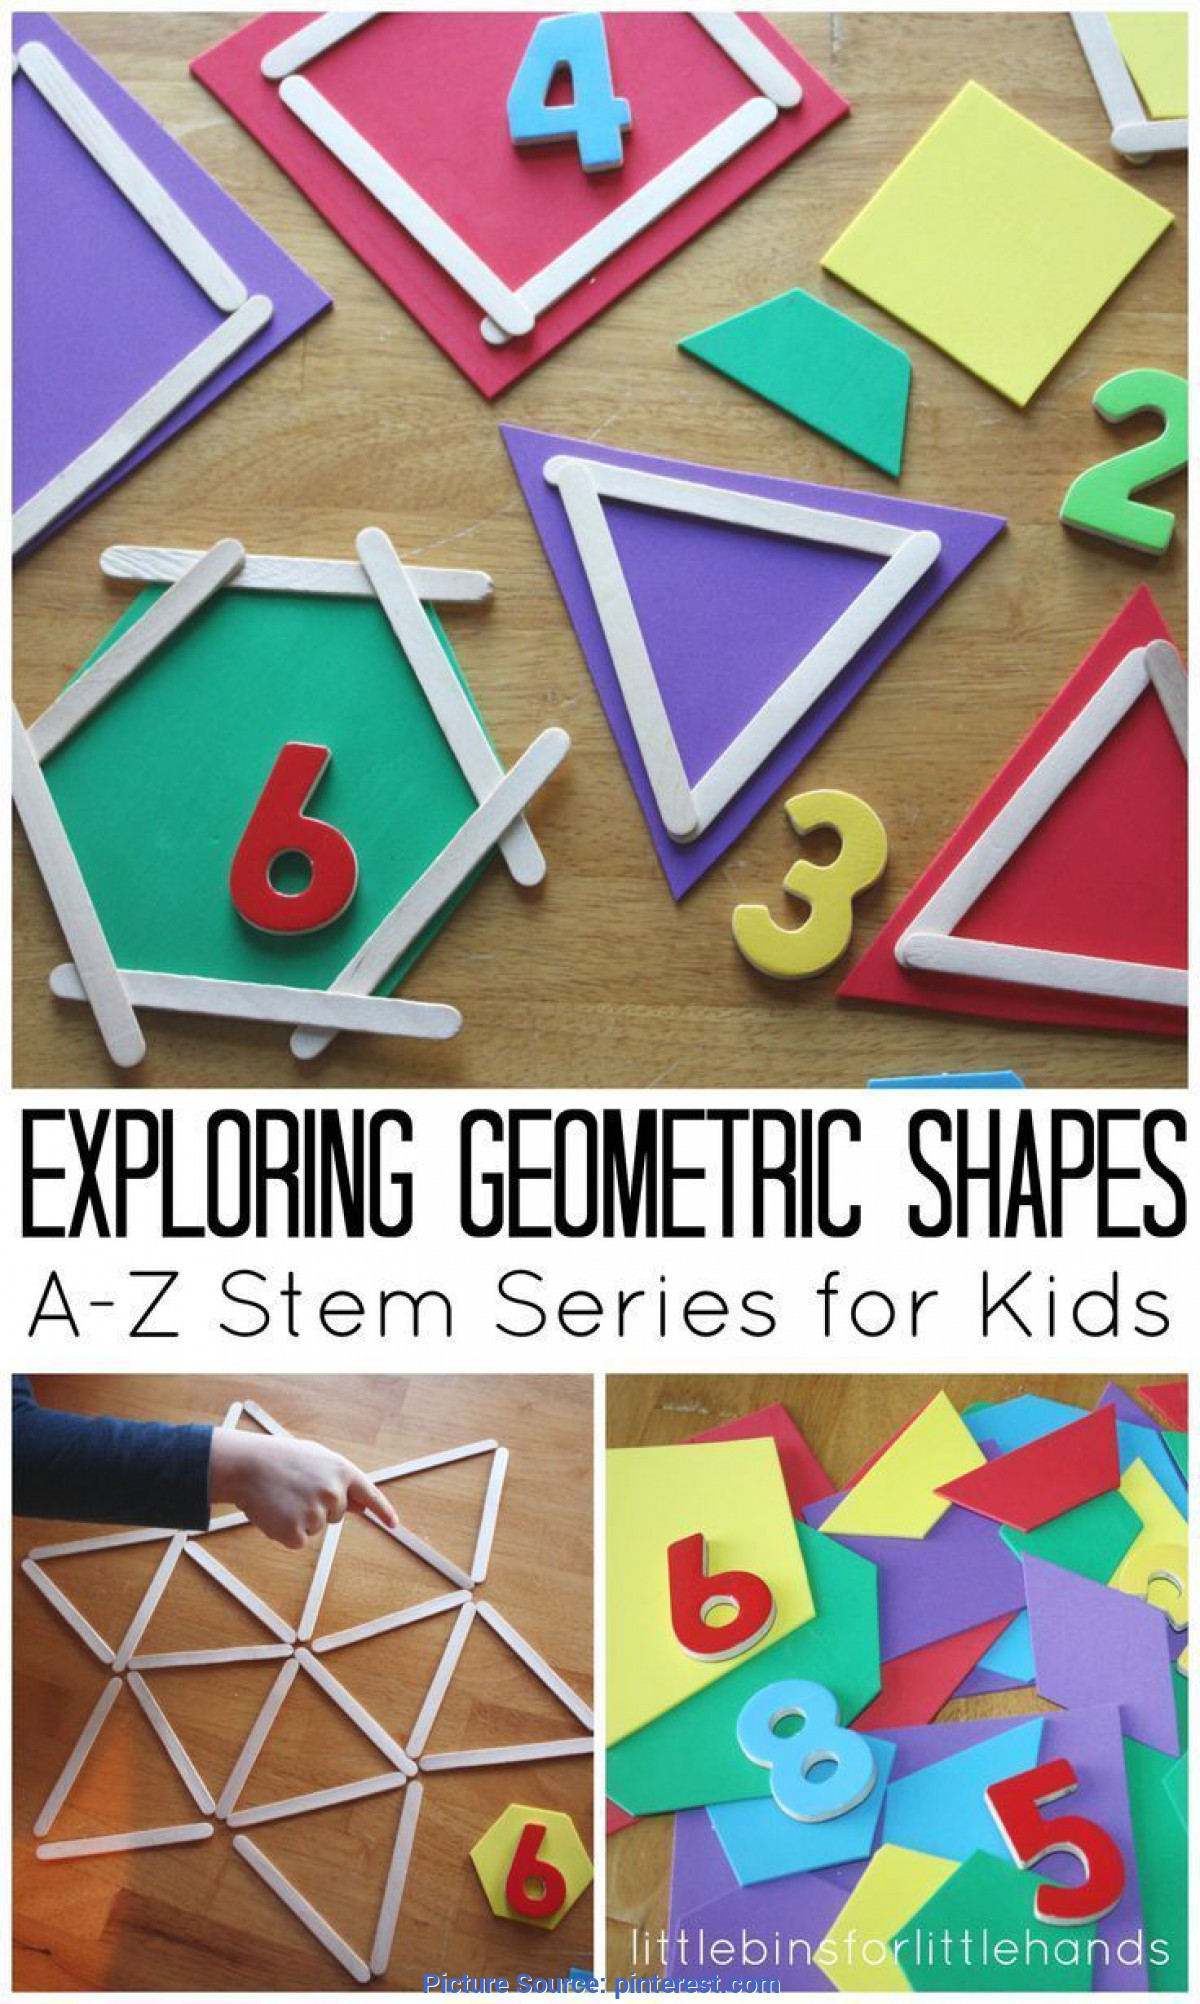 Special Math Shapes Lesson Plans For Preschoolers Geometric Shapes Activity Math And Stem Ideas For Kids | Mat